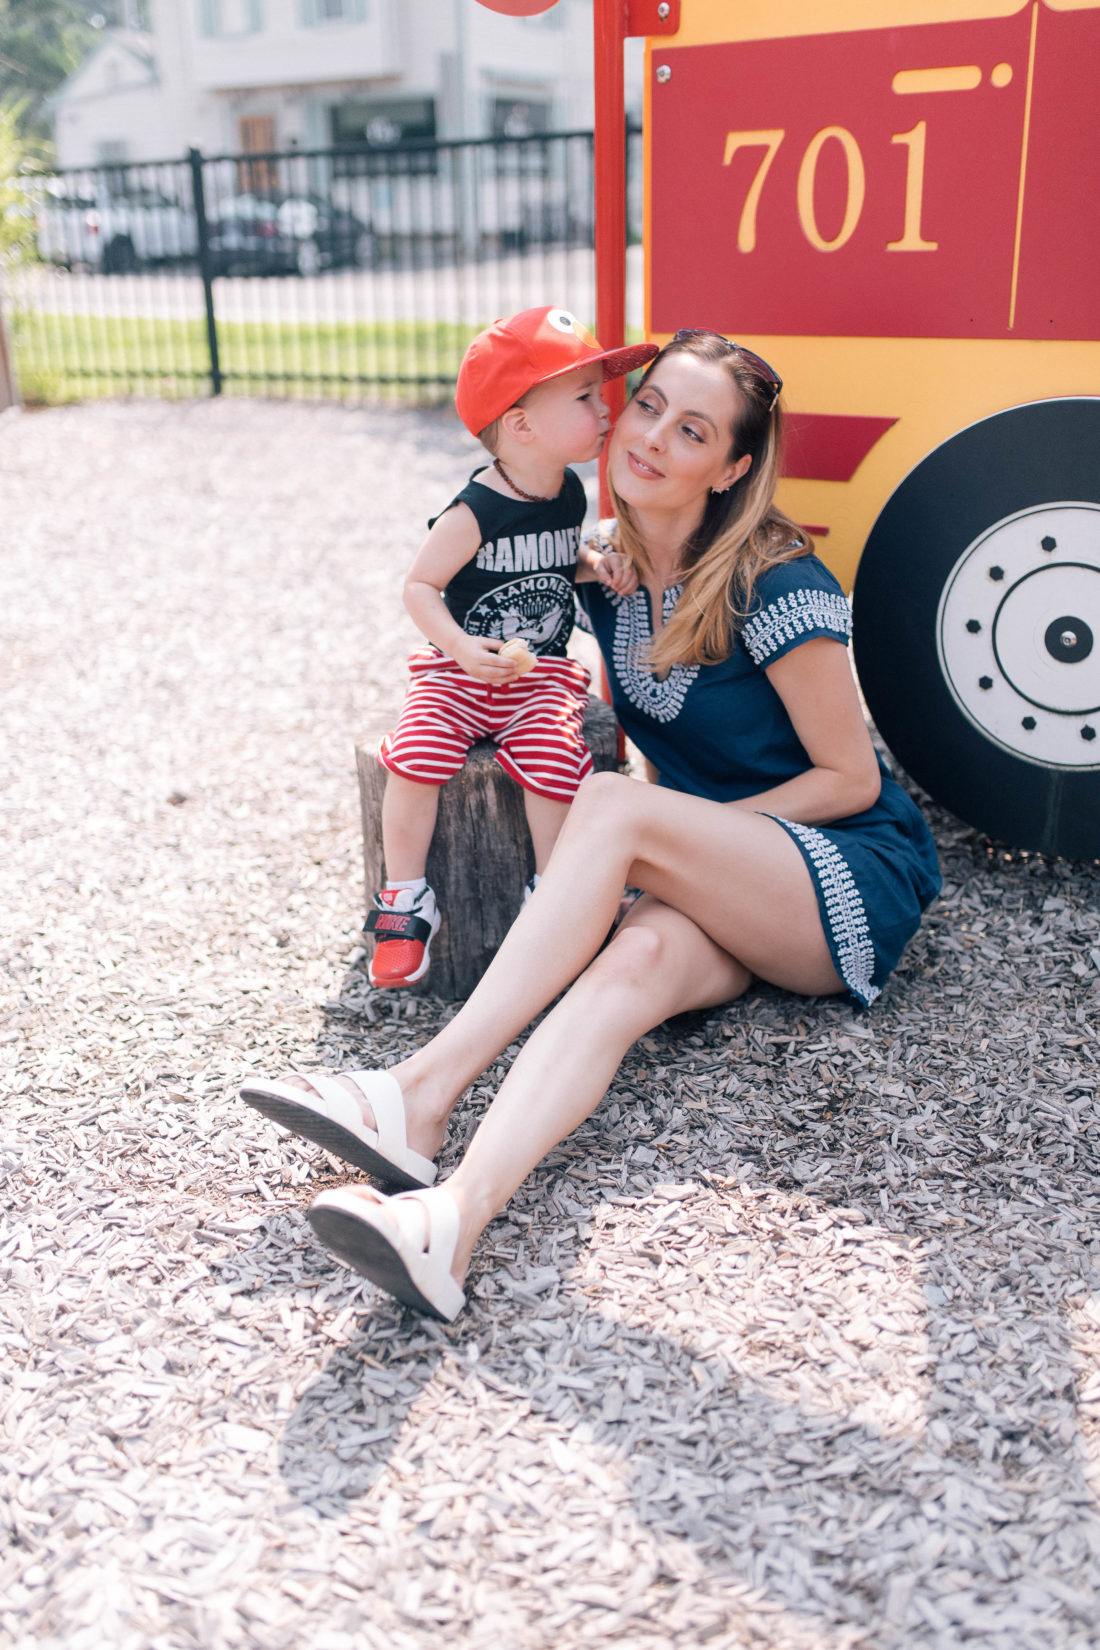 Major Martino leans in to give his Mom a kiss on the cheek at the playground